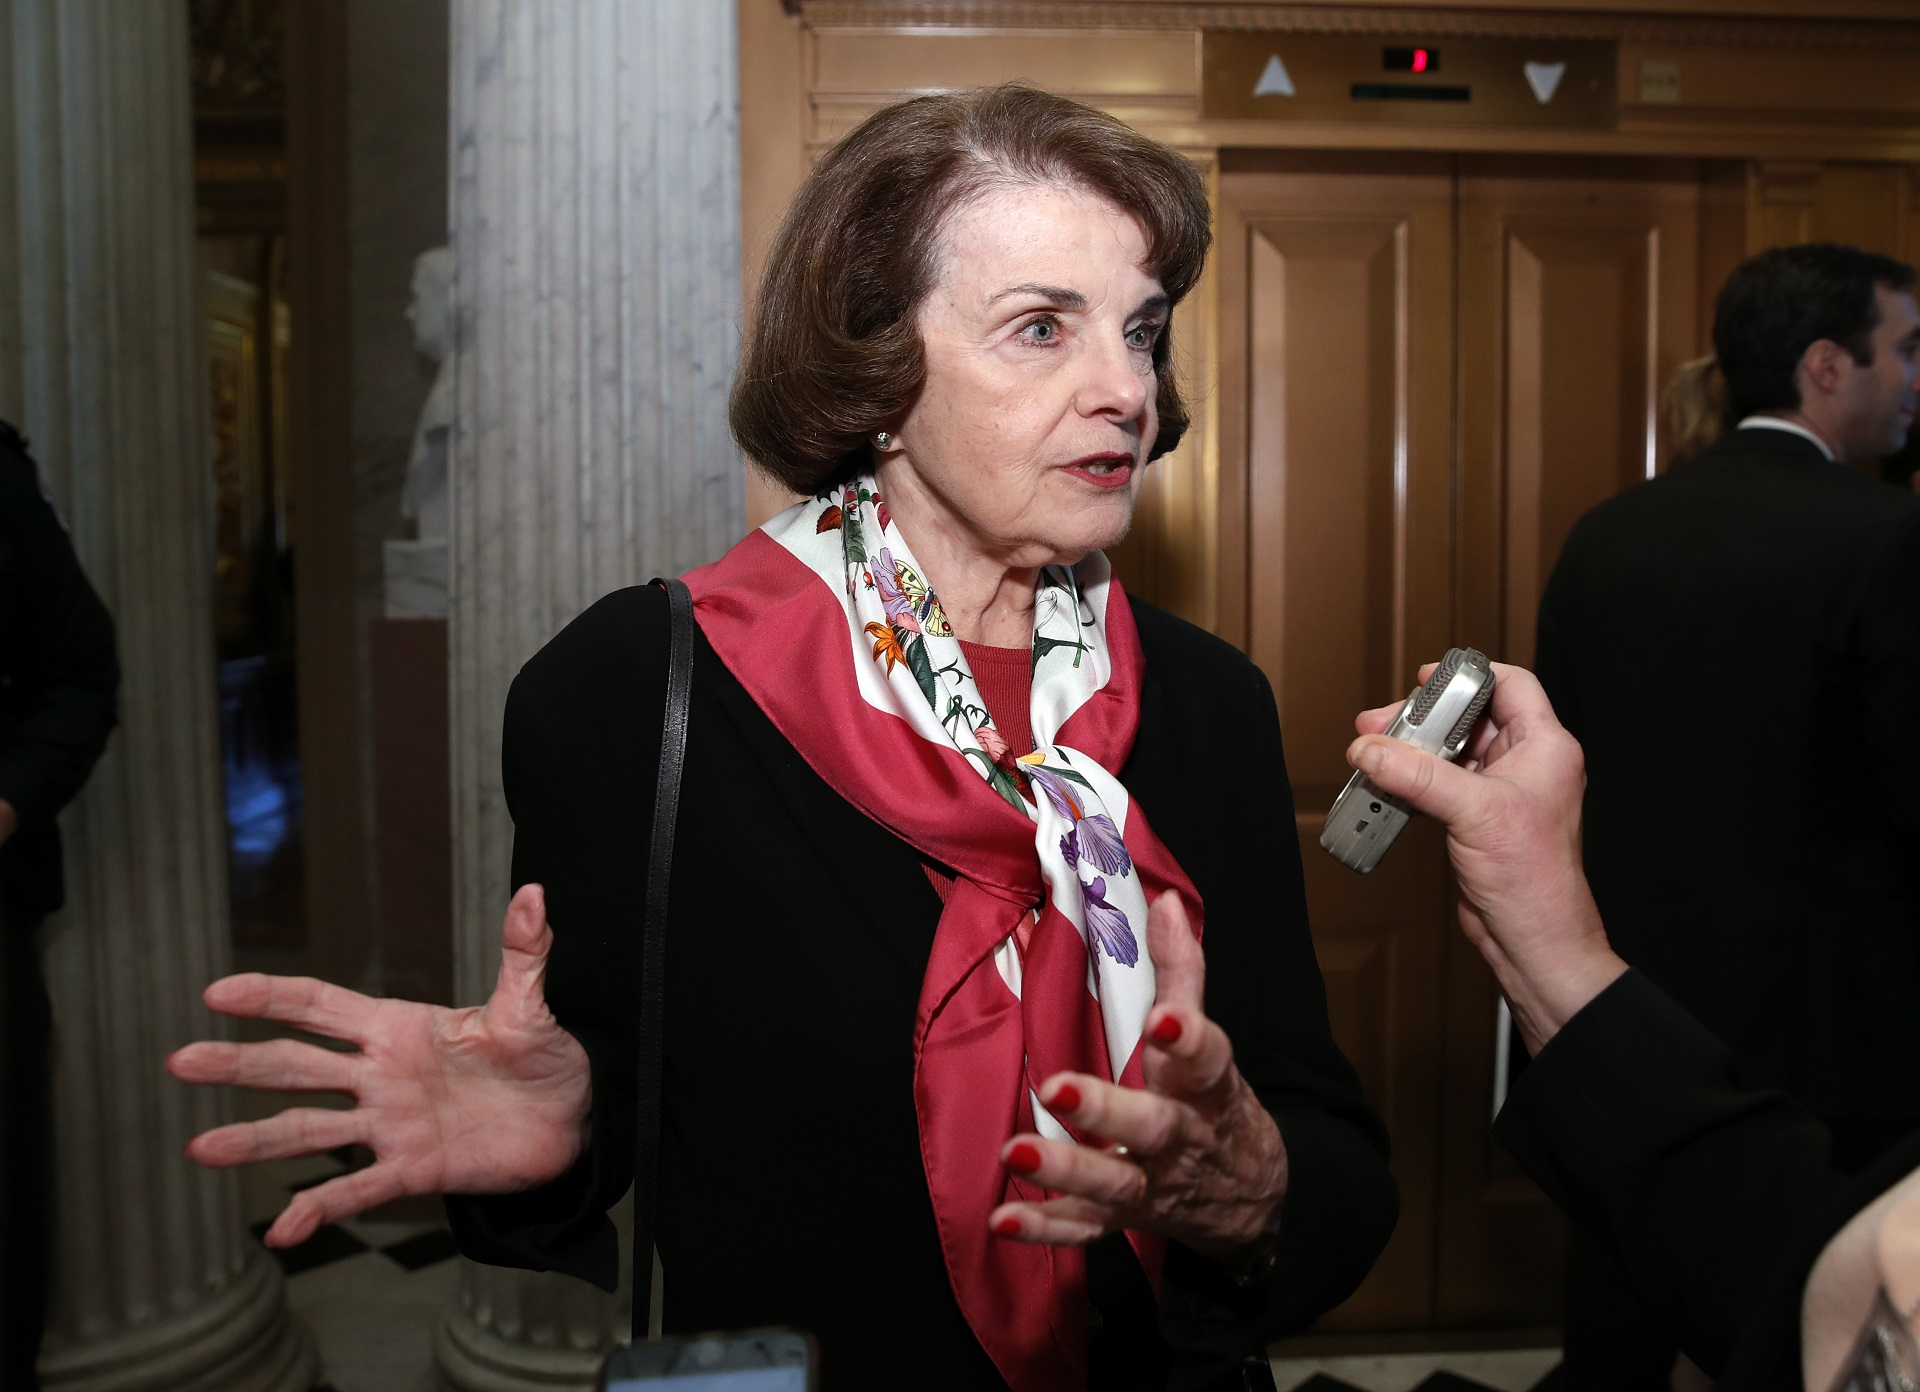 FBI, media give Feinstein a pass for her spy scandal, but attack Trump with no justification